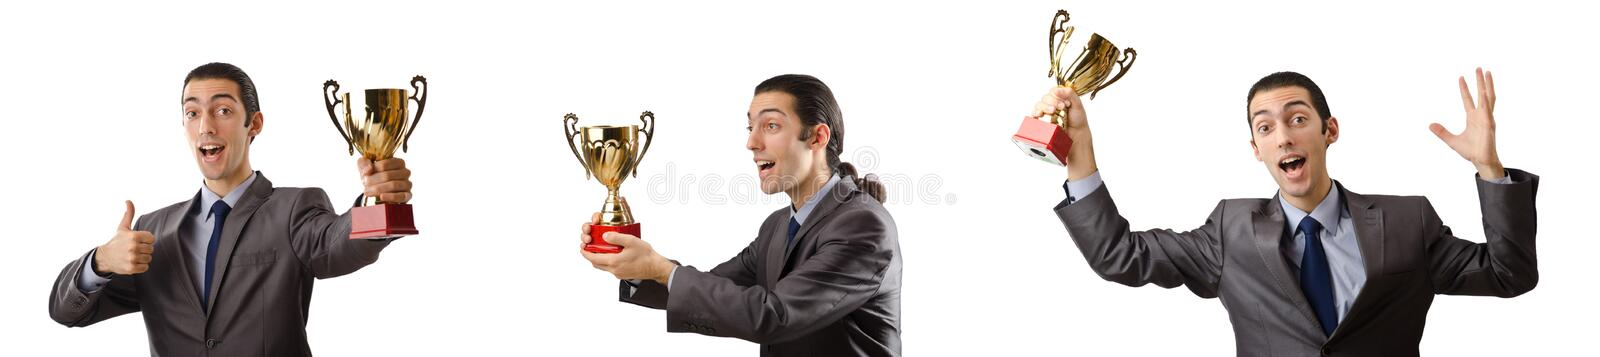 The collage of businessman receiving award. Collage of businessman receiving award stock photos